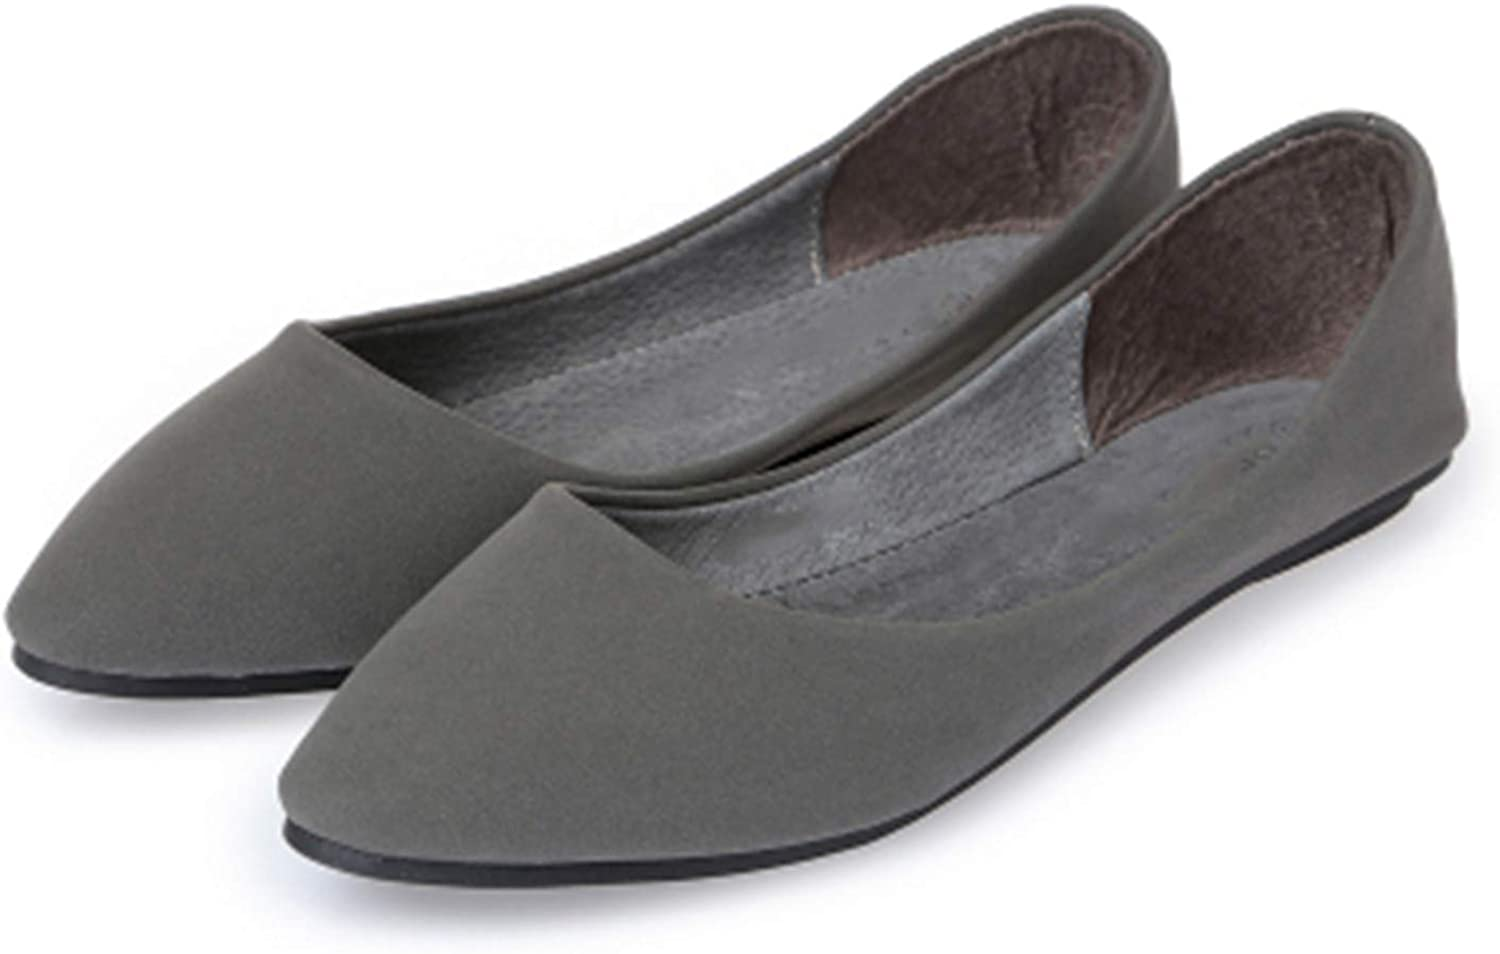 Mary Steele Spring and Autumn Womens Loafers Flat Heel Shoes Boat Shoes Casual Grey